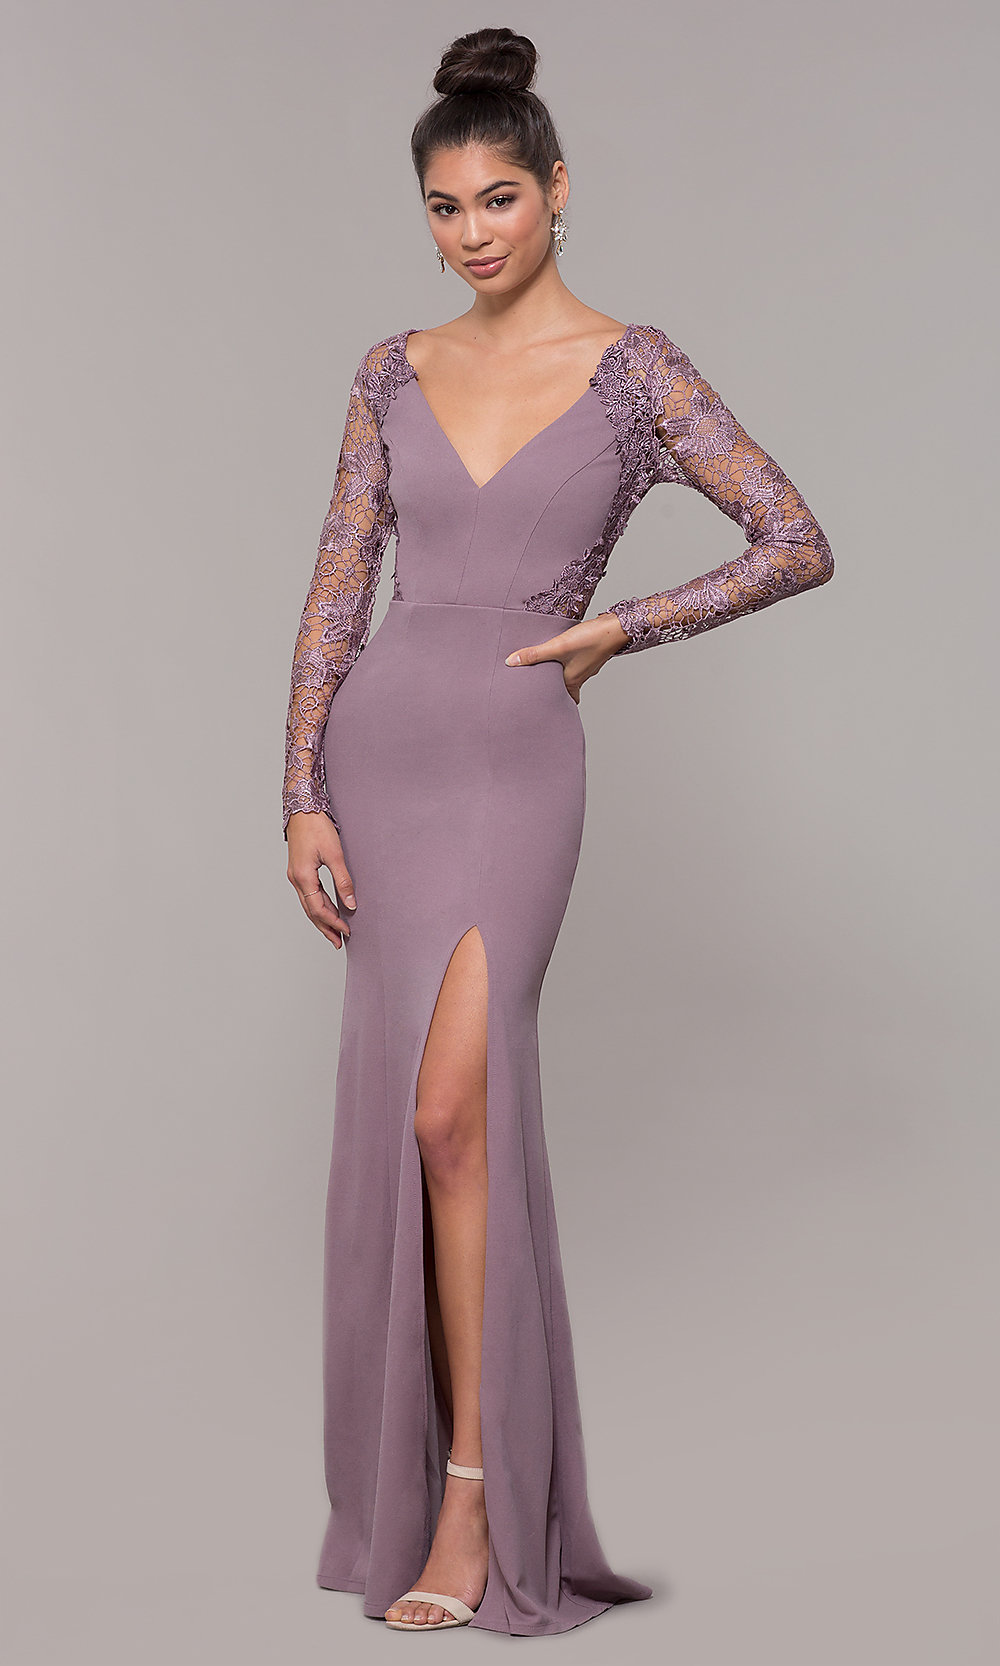 7bac027dca0 ... formal prom dress with slit. Style  Tap to expand